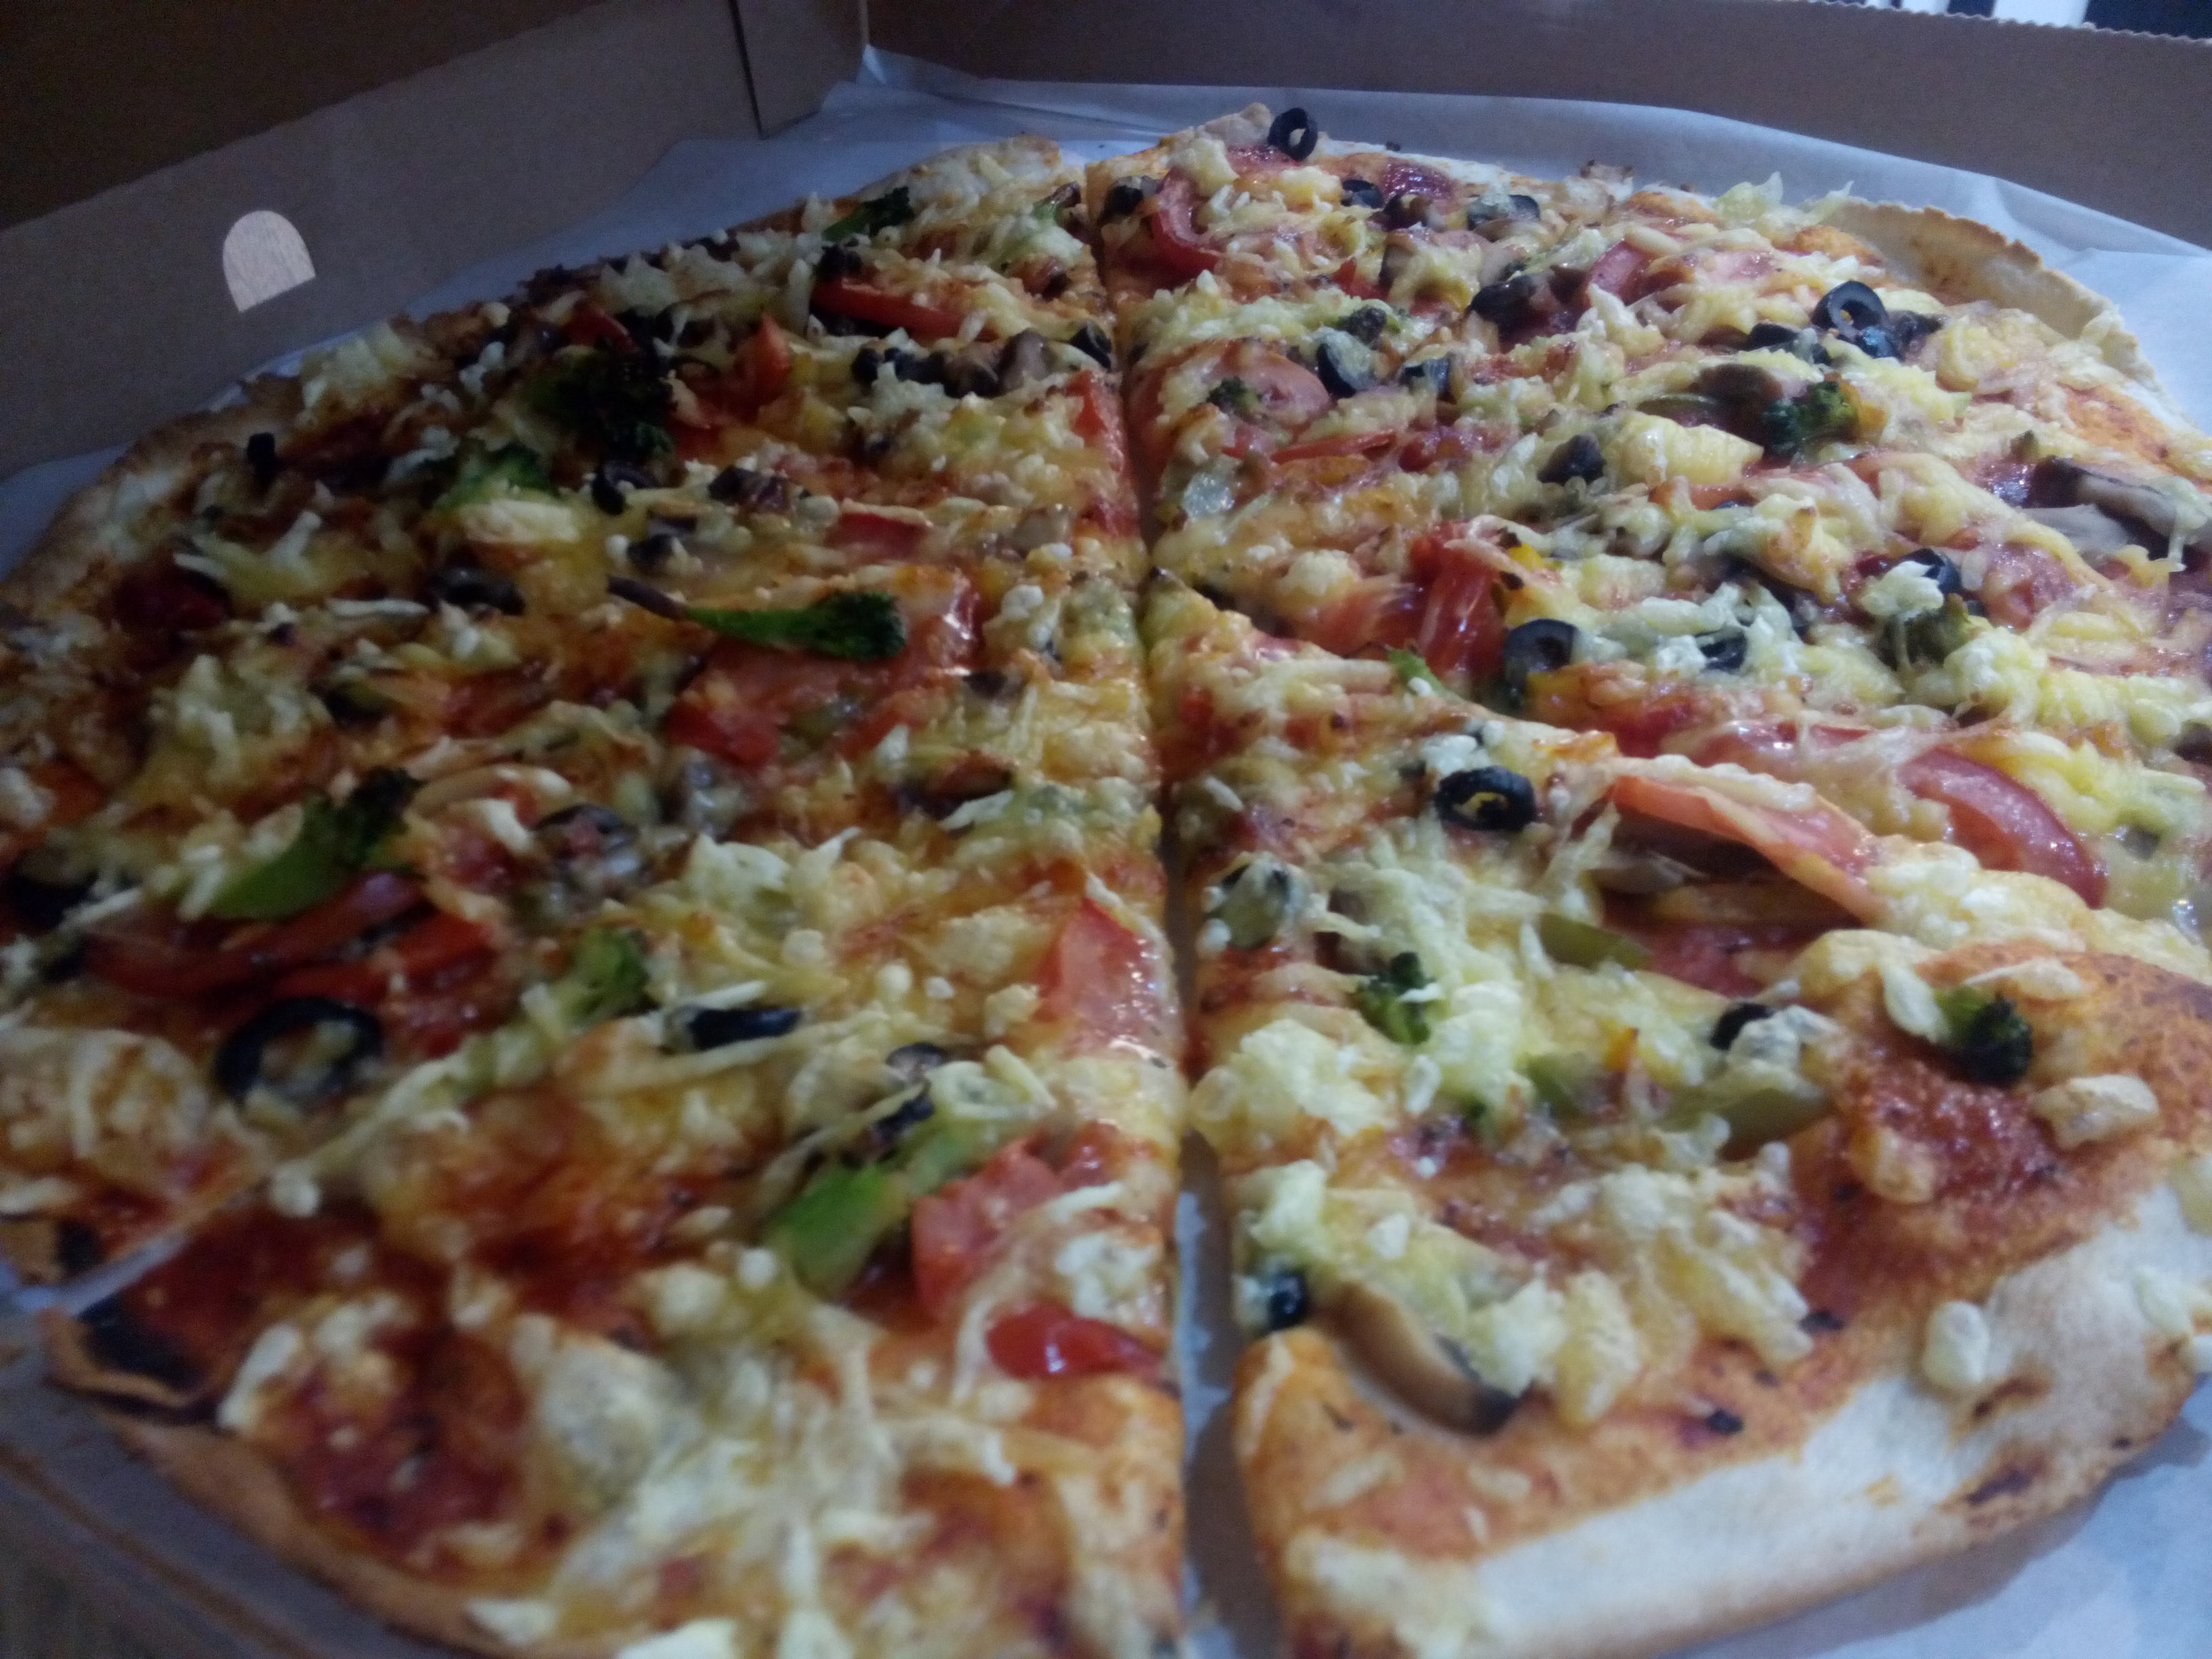 A pizza in a cardboard takeout box with vegetables and vegan cheese